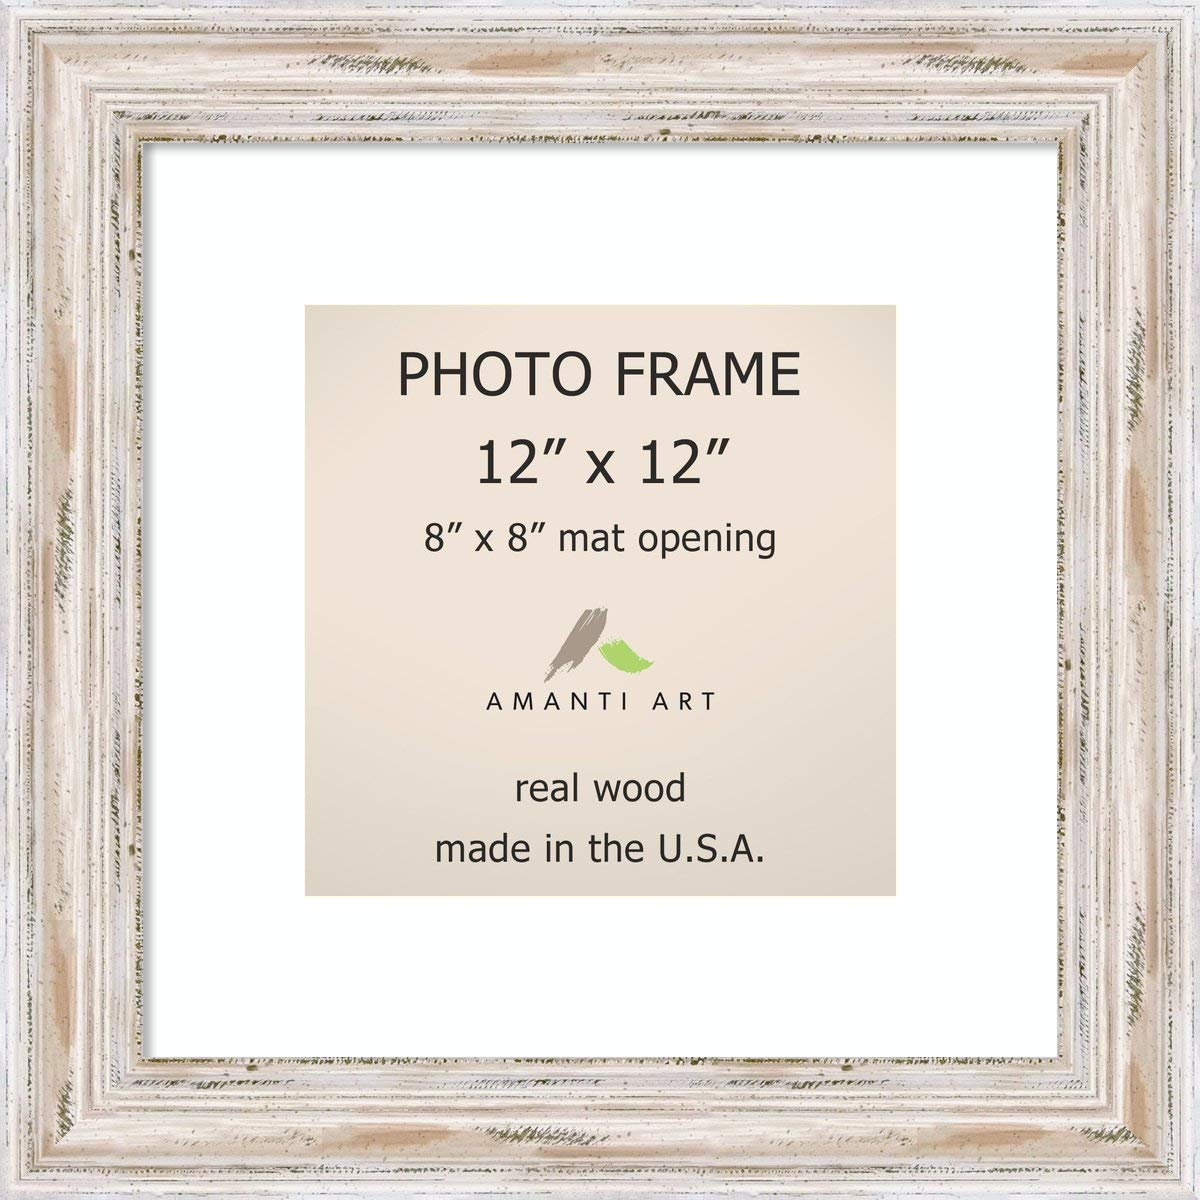 Amanti Art Picture Frame, 12x12 Matted to 8x8 Alexandria White Wash Wood: Outer Size 15 x 15